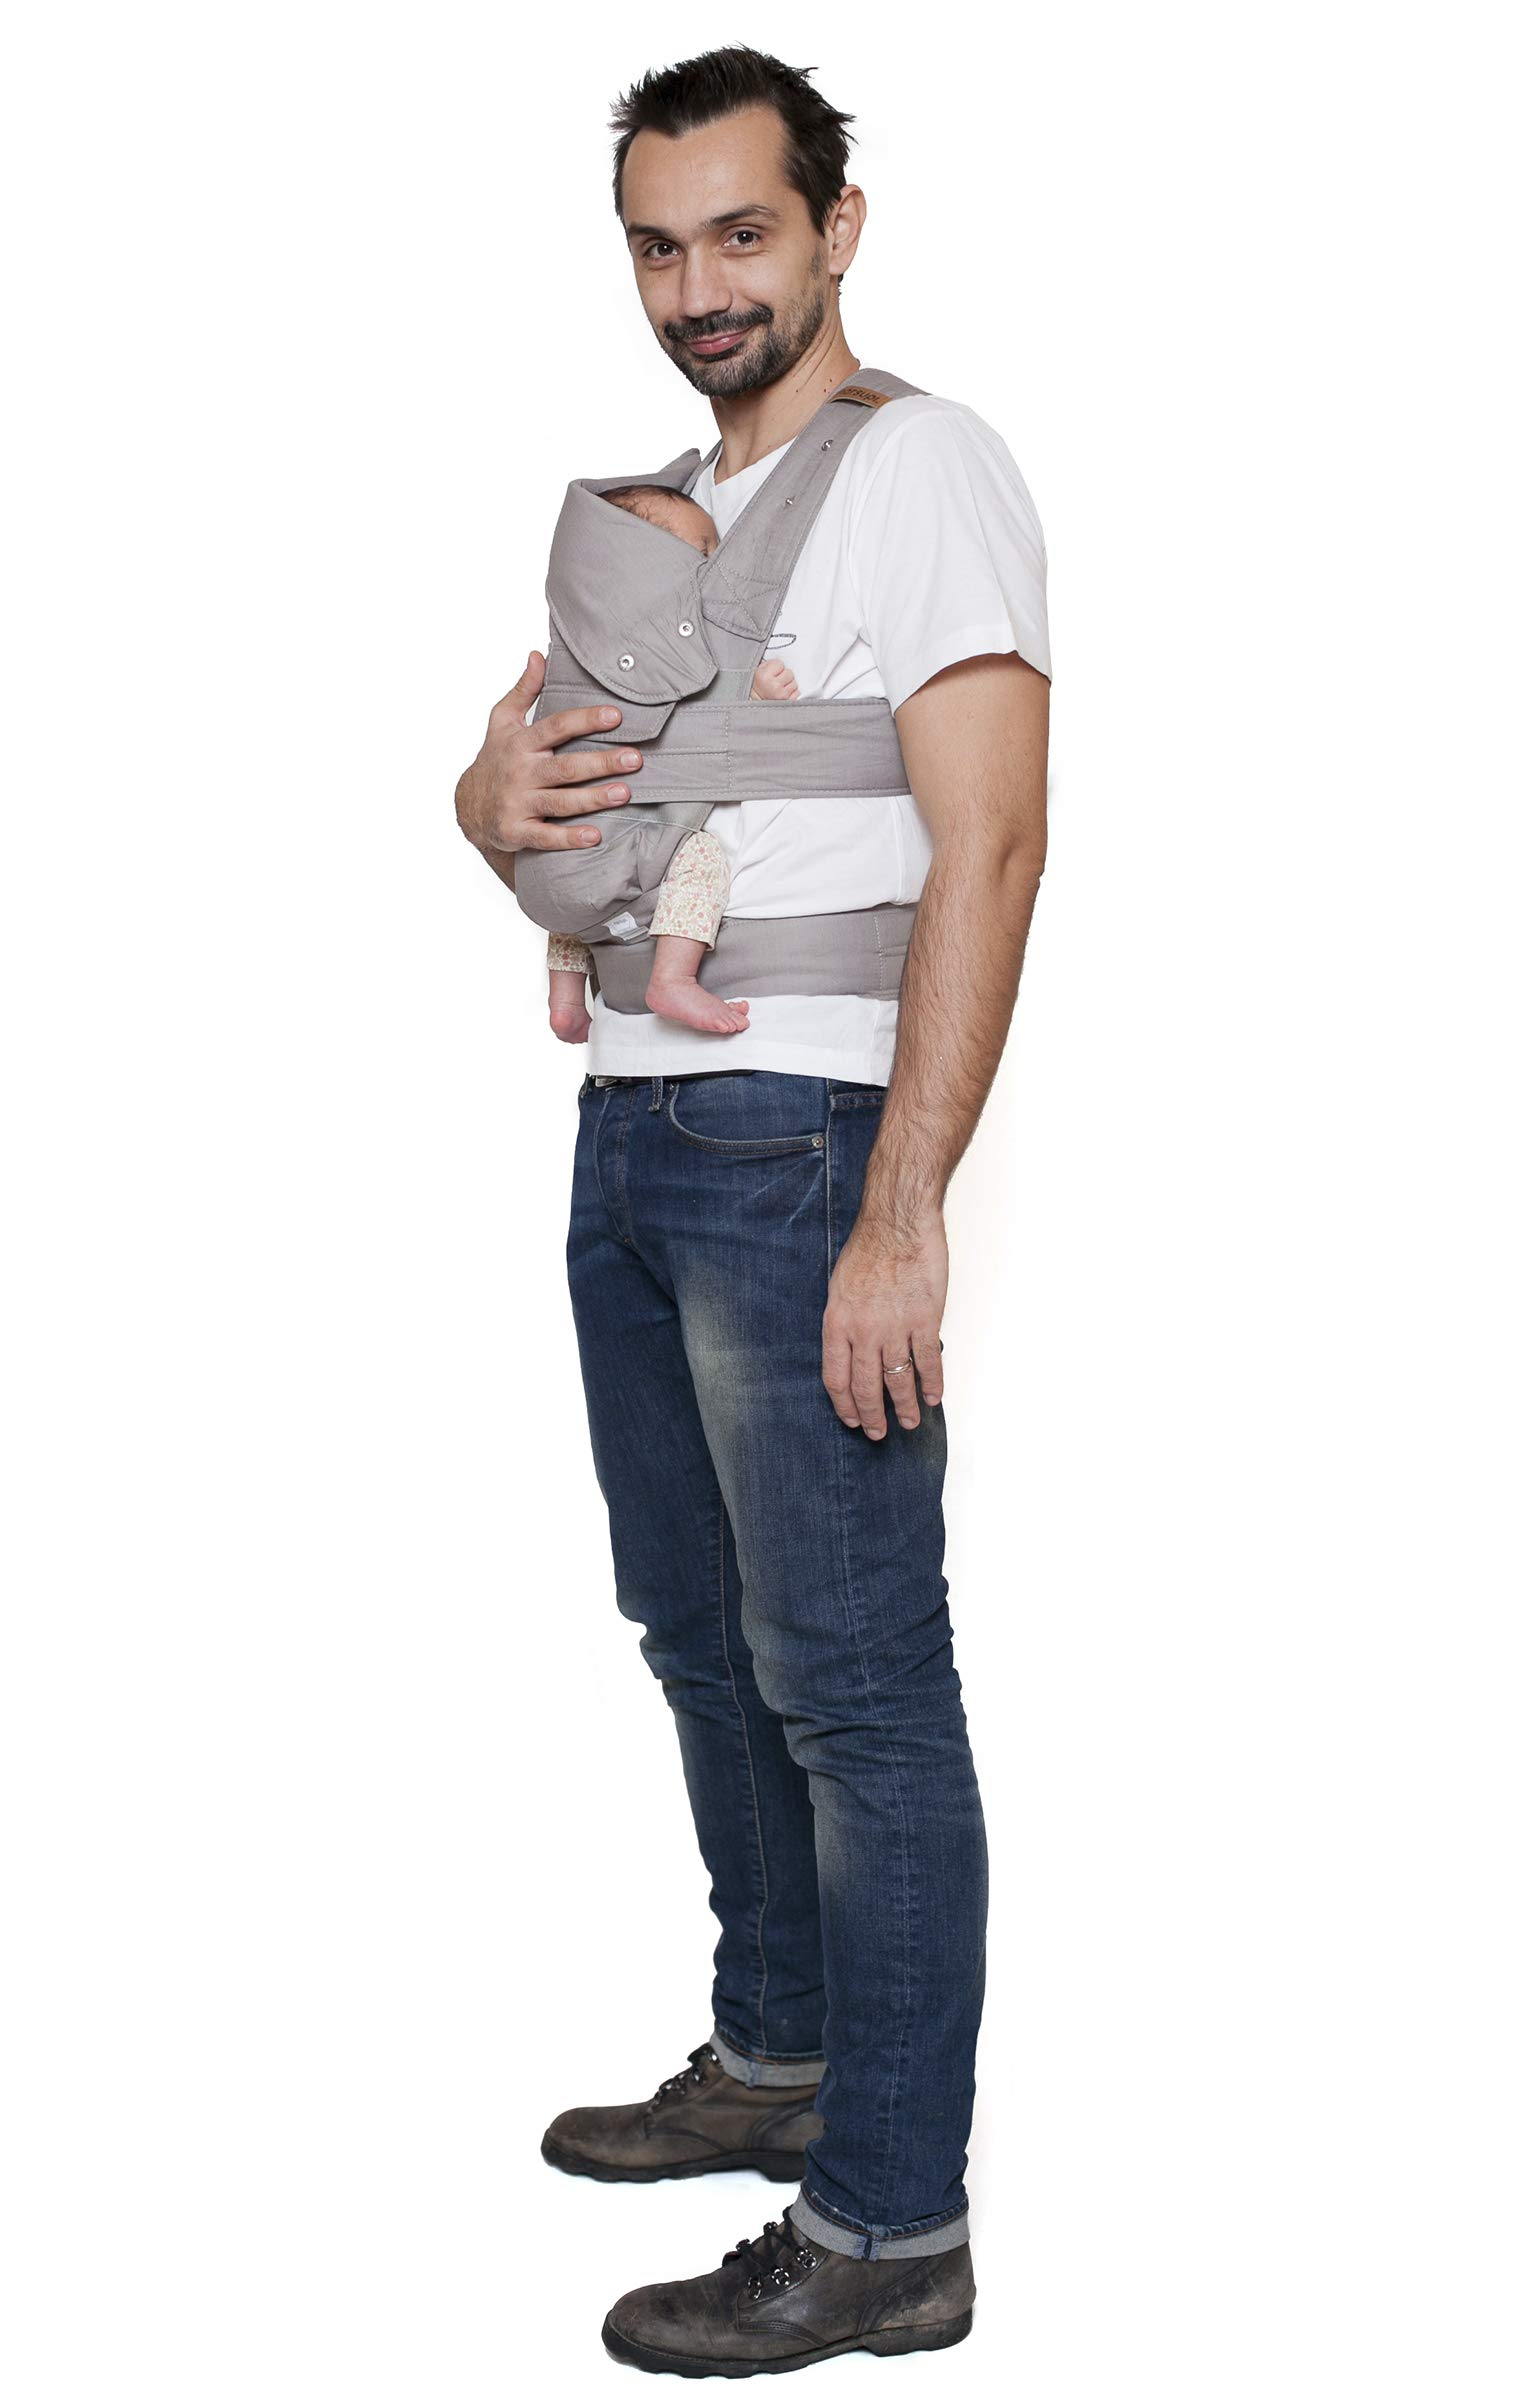 """marsupi Baby and Child Carrier, Version 2.0 Breeze (lightgrey/Light Gray, S/M) Marsupi Particularly compact and lightweight front & hip carrier that fits in any pocket. Revised Version 2.0. Even lighter and more breathable than the """"Classic"""" version thanks to a extra fine linen-cotton mix. Only 250g net weight. Easy to put on thanks to unique Velcro system. 60% linen / 40% cotton, made in Europe. Machine washable up to 30°. Perfect support for the little ones, optimum weight distribution for the parents, wide base for orthopaedically correct posture (M position) and thigh support for your growing child 3"""